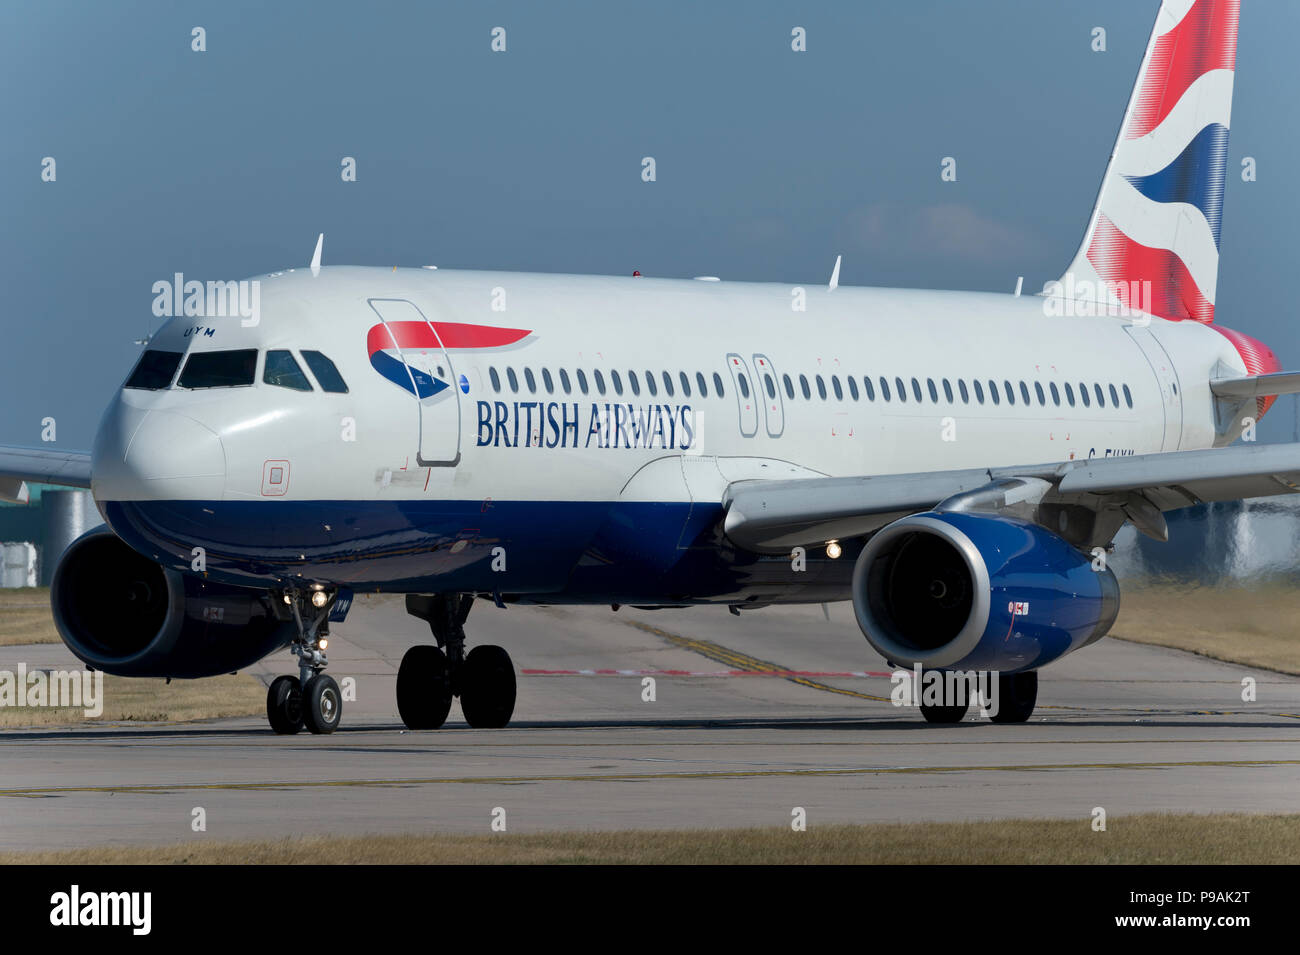 A British Airways Airbus A320-232 taxis along the runway at Manchester Airport whilst preparing to take off. - Stock Image